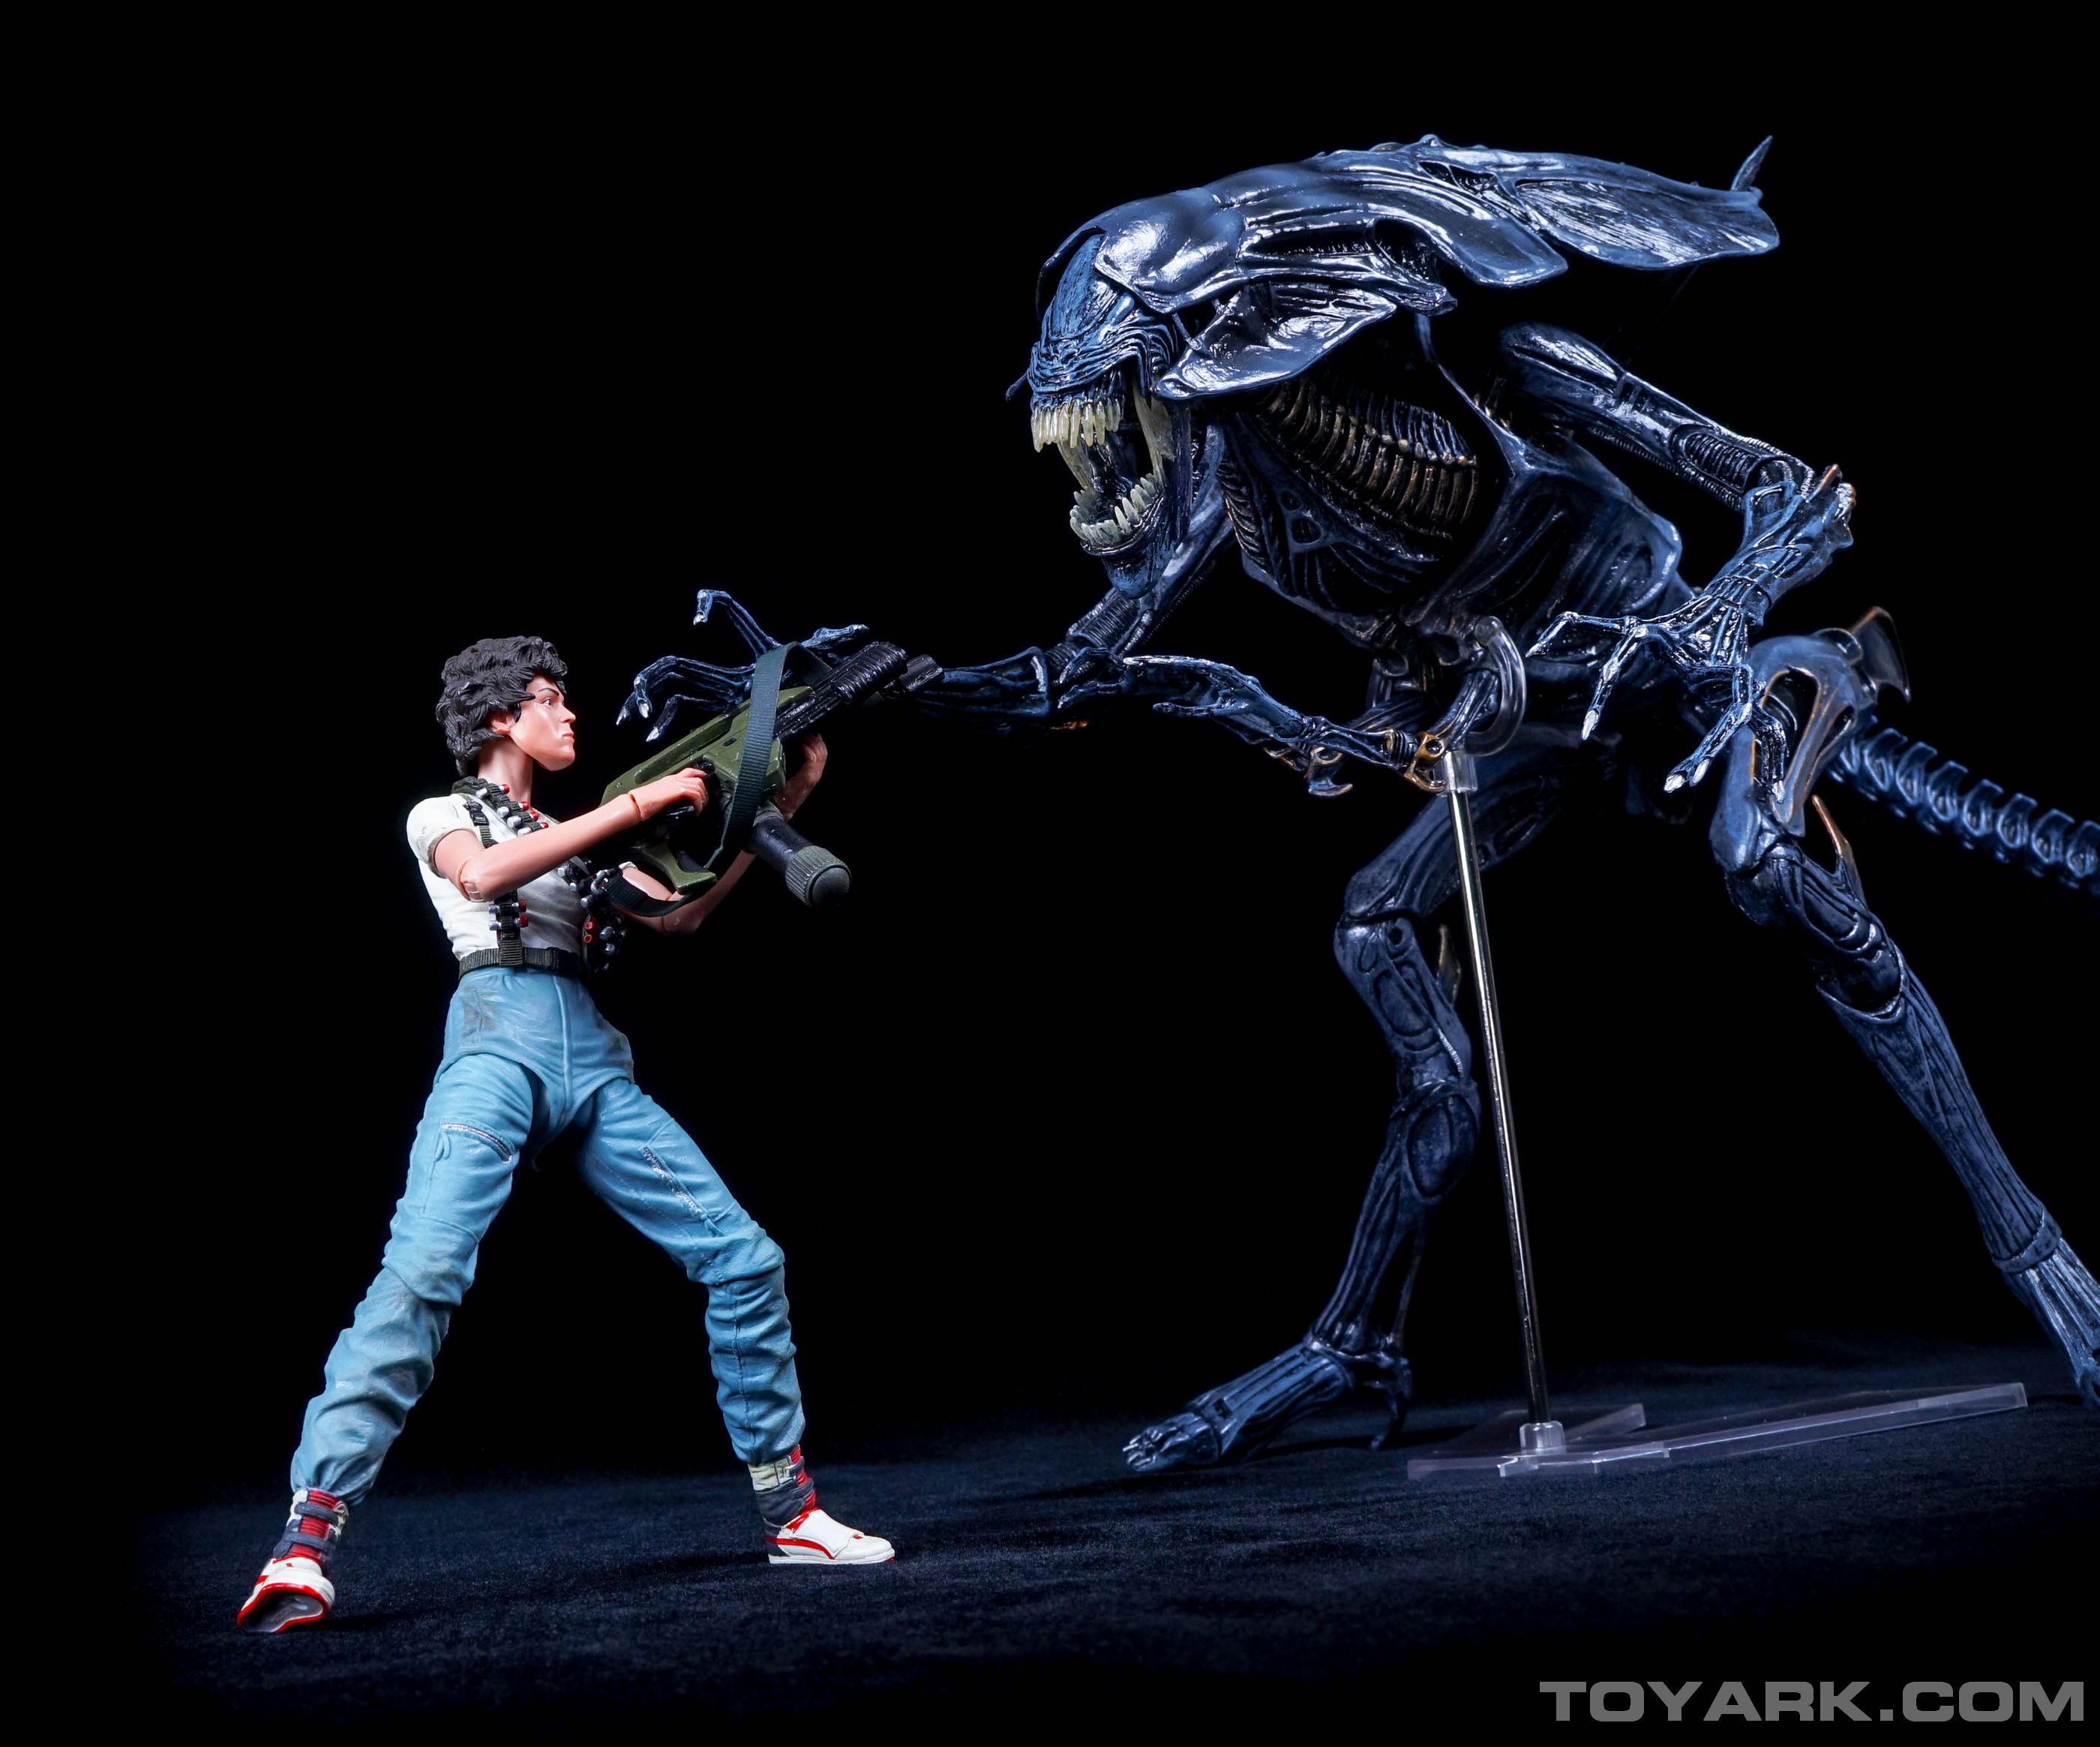 http://news.toyark.com/wp-content/uploads/sites/4/2015/08/Aliens-Series-5-Group-Shots-040.jpg